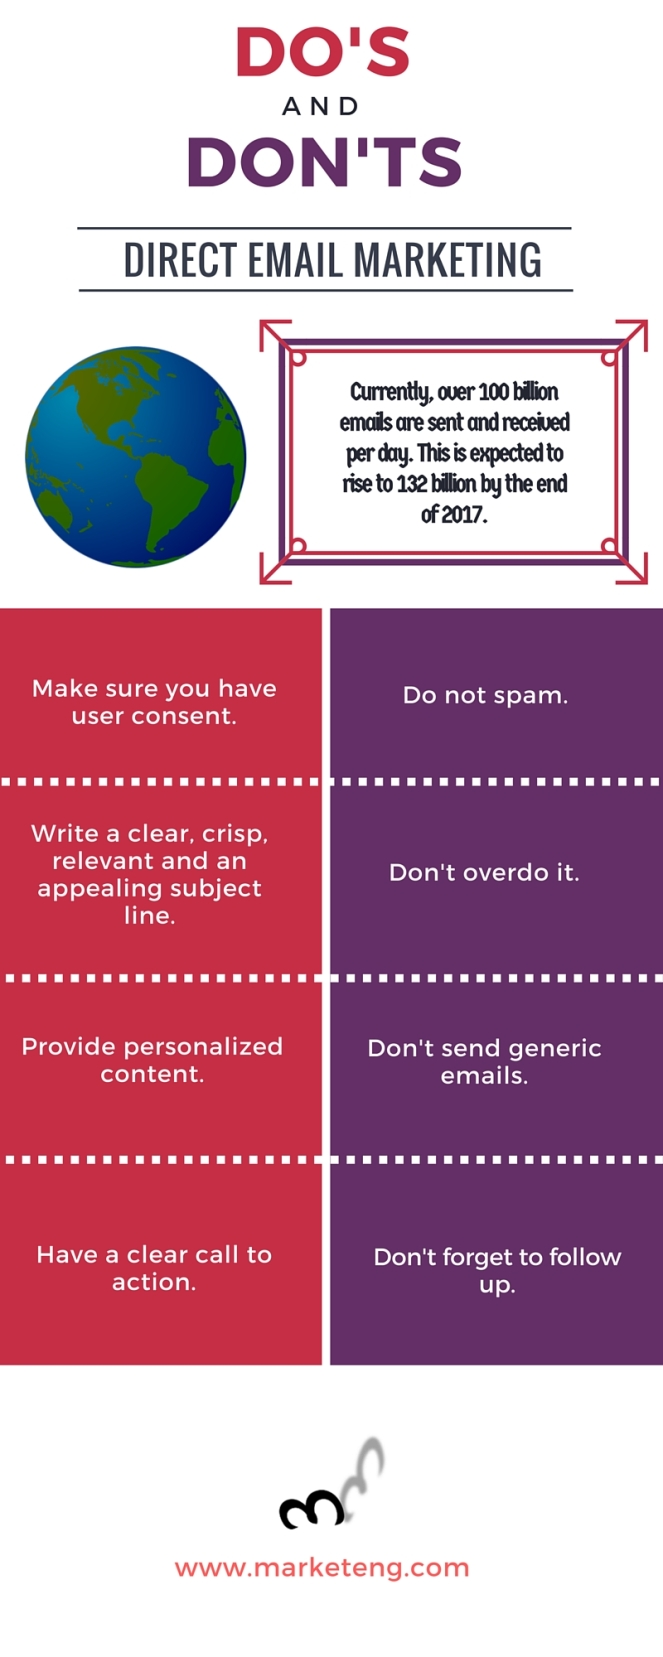 INFOGRAPHIC - Do's and Don'ts of DIrect Email Marketing